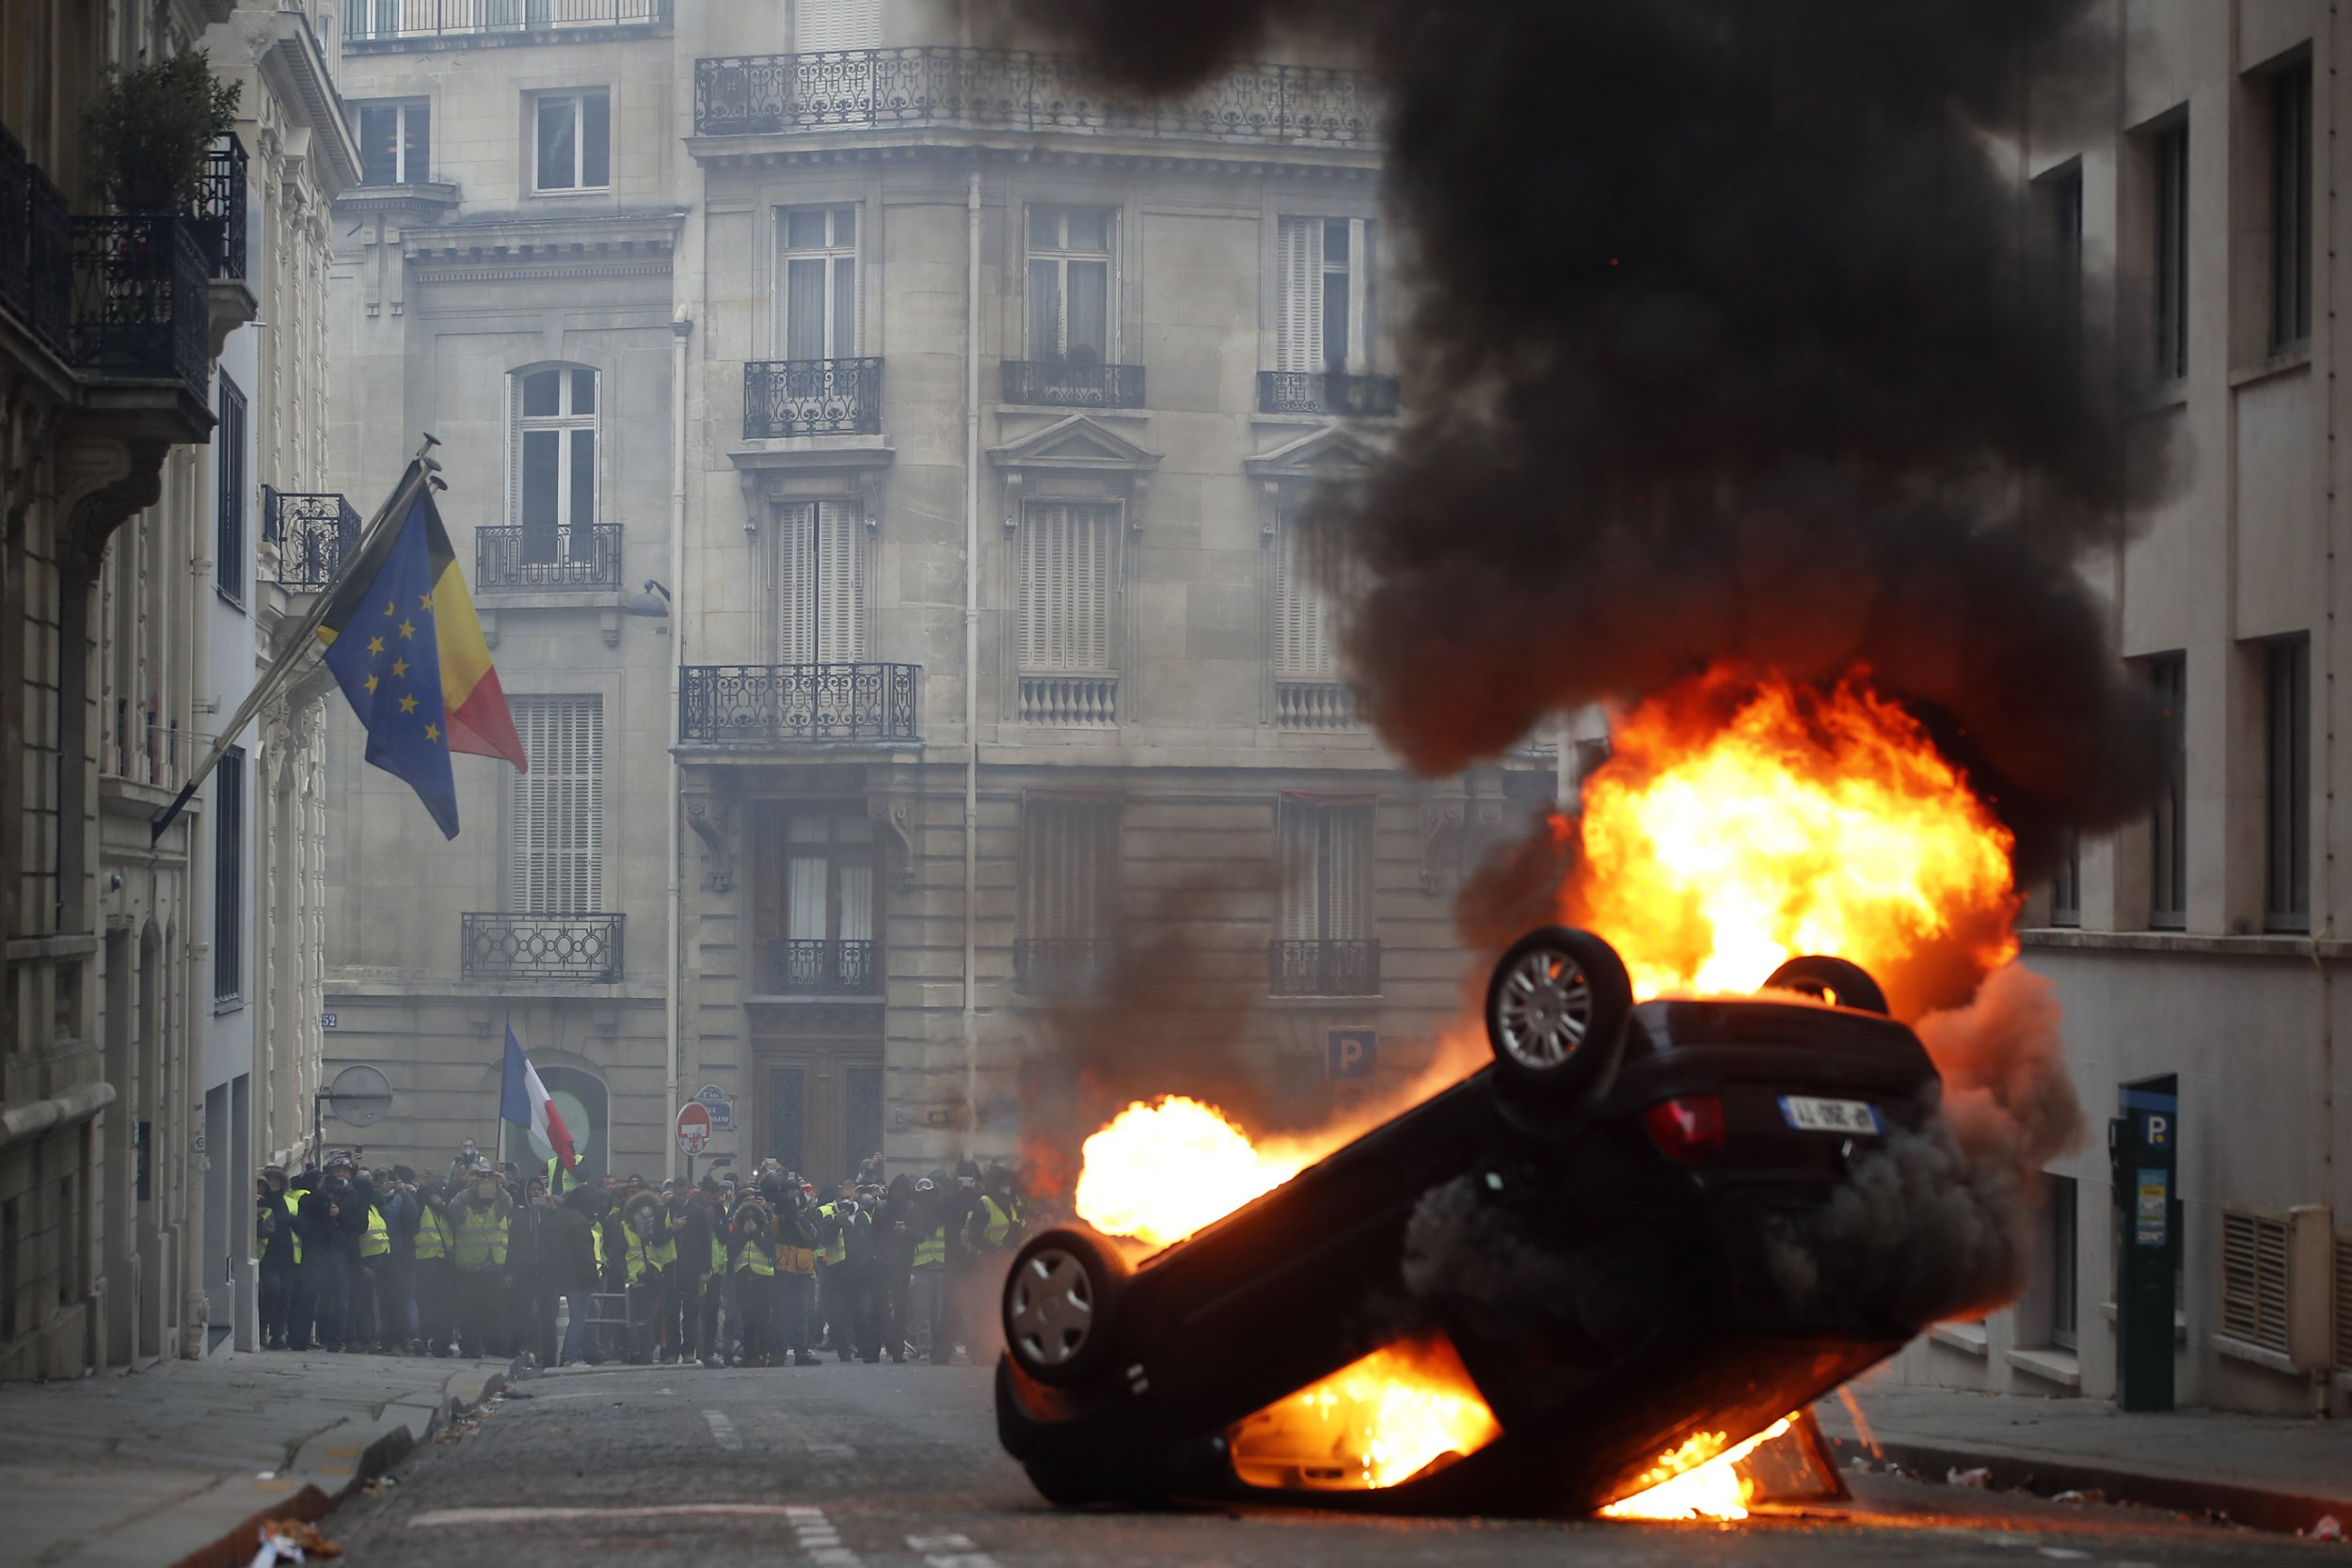 epa07217247 Yellow Vests (Gilets jaunes) protesters are seen behind a burning overturned car near Avenue Marceau during the demonstration in Paris, France, 08 December 2018. The so-called 'gilets jaunes' (yellow vests) is a protest movement, which reportedly has no political affiliation, that continues protests across the nation over high fuel prices. EPA/IAN LANGSDON